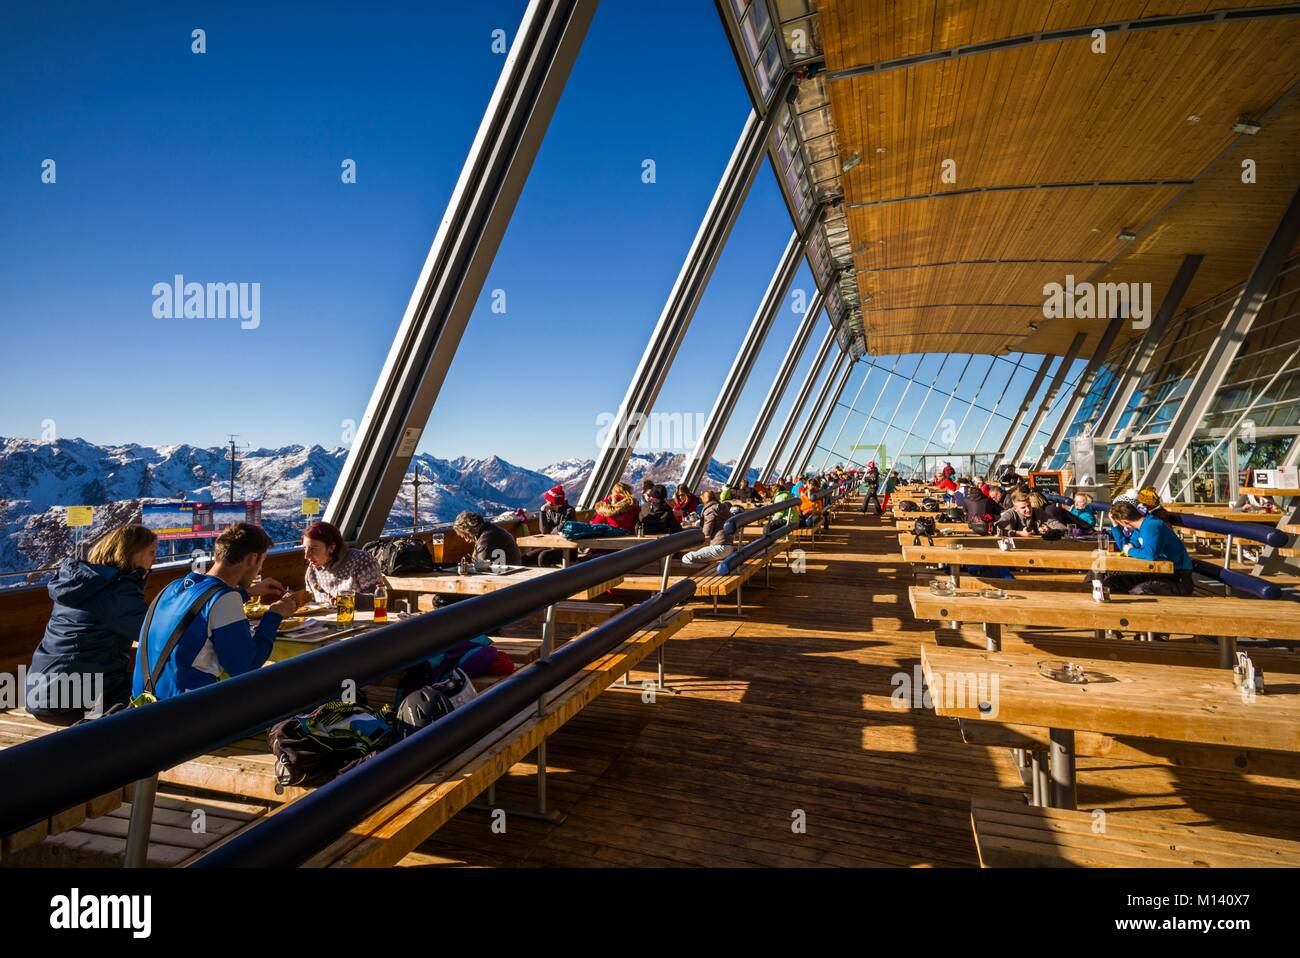 Austria, Tyrol, Axamer Lizum, hosting village of the 1964 and 1976 Winter Olympics, Hoadl Haus Restaurant dining - Stock Image